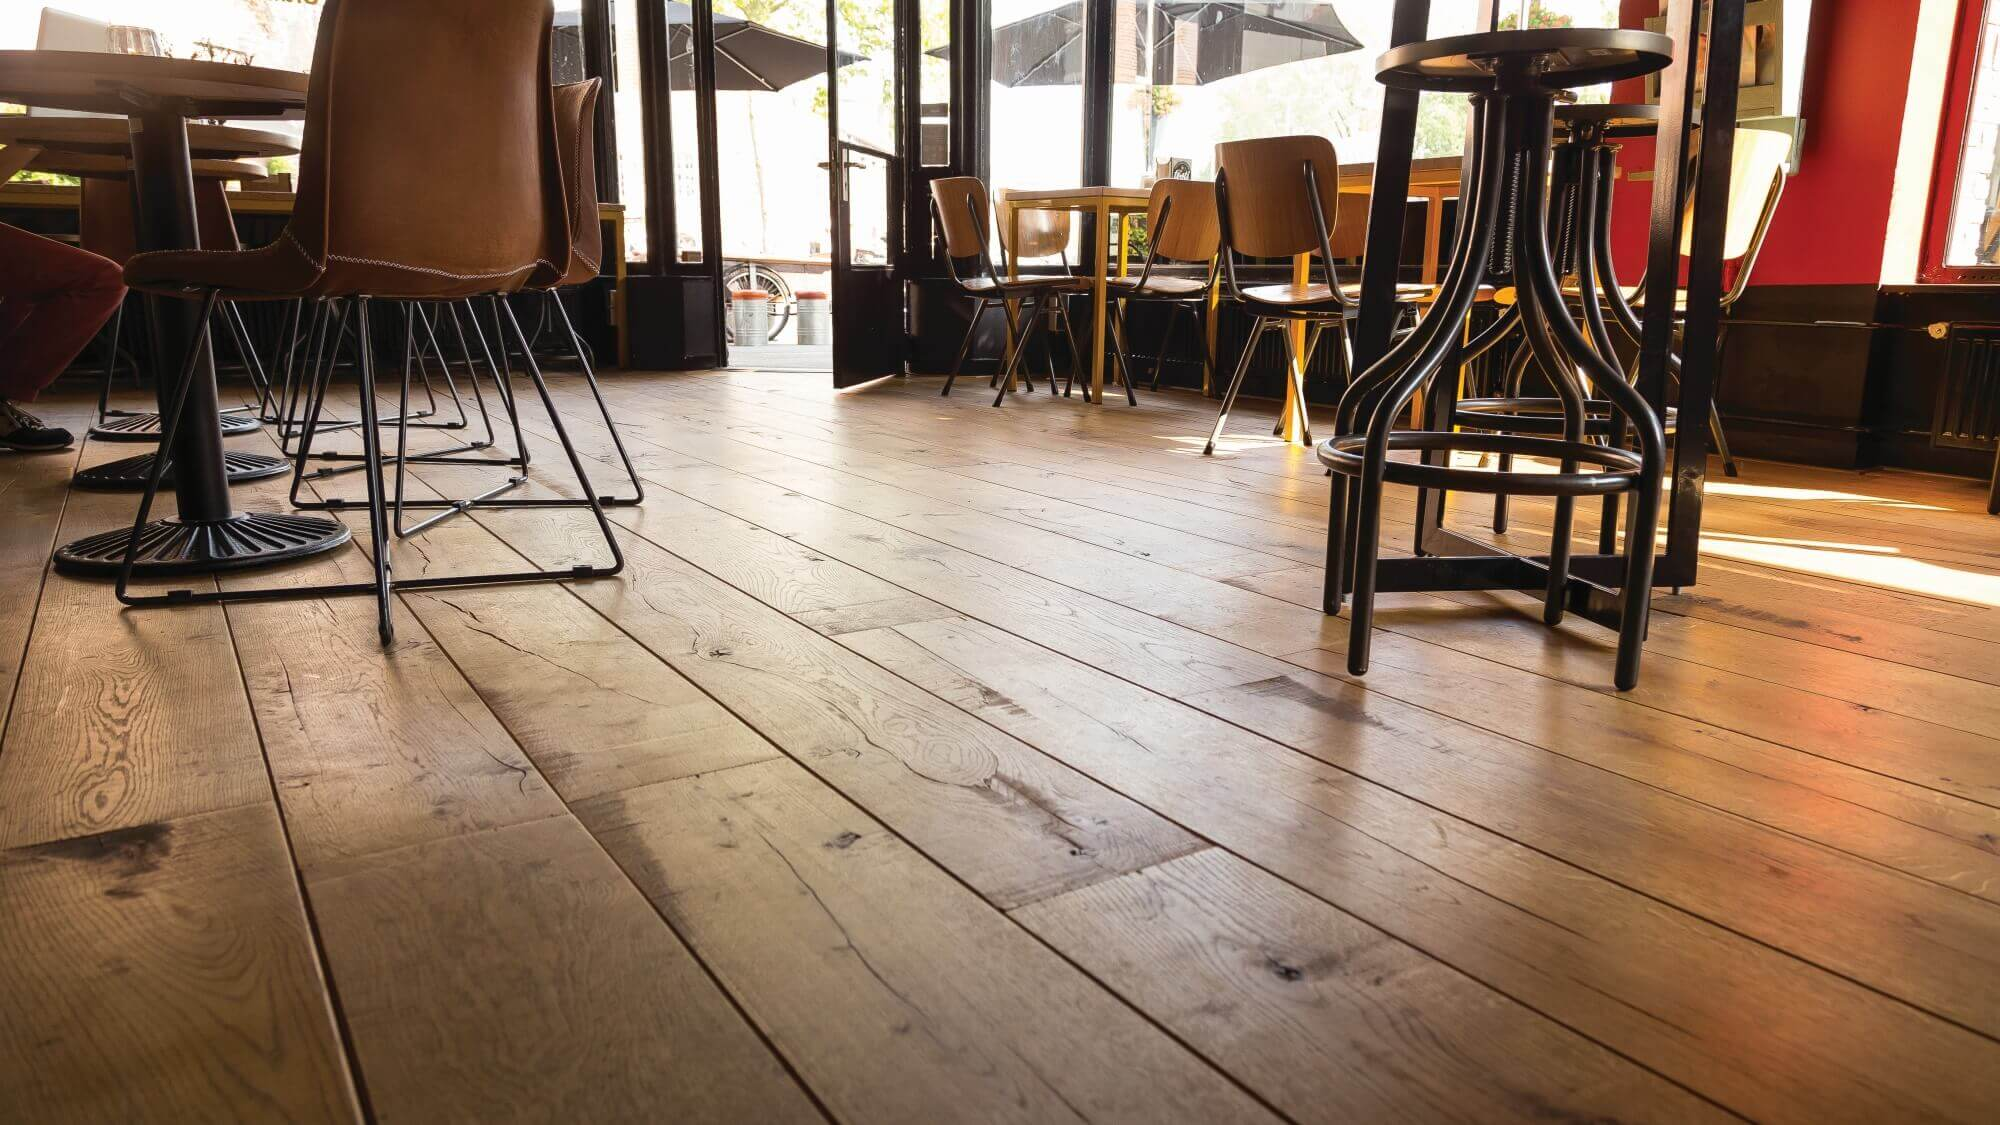 Hardwood flooring from aged oak in a store.